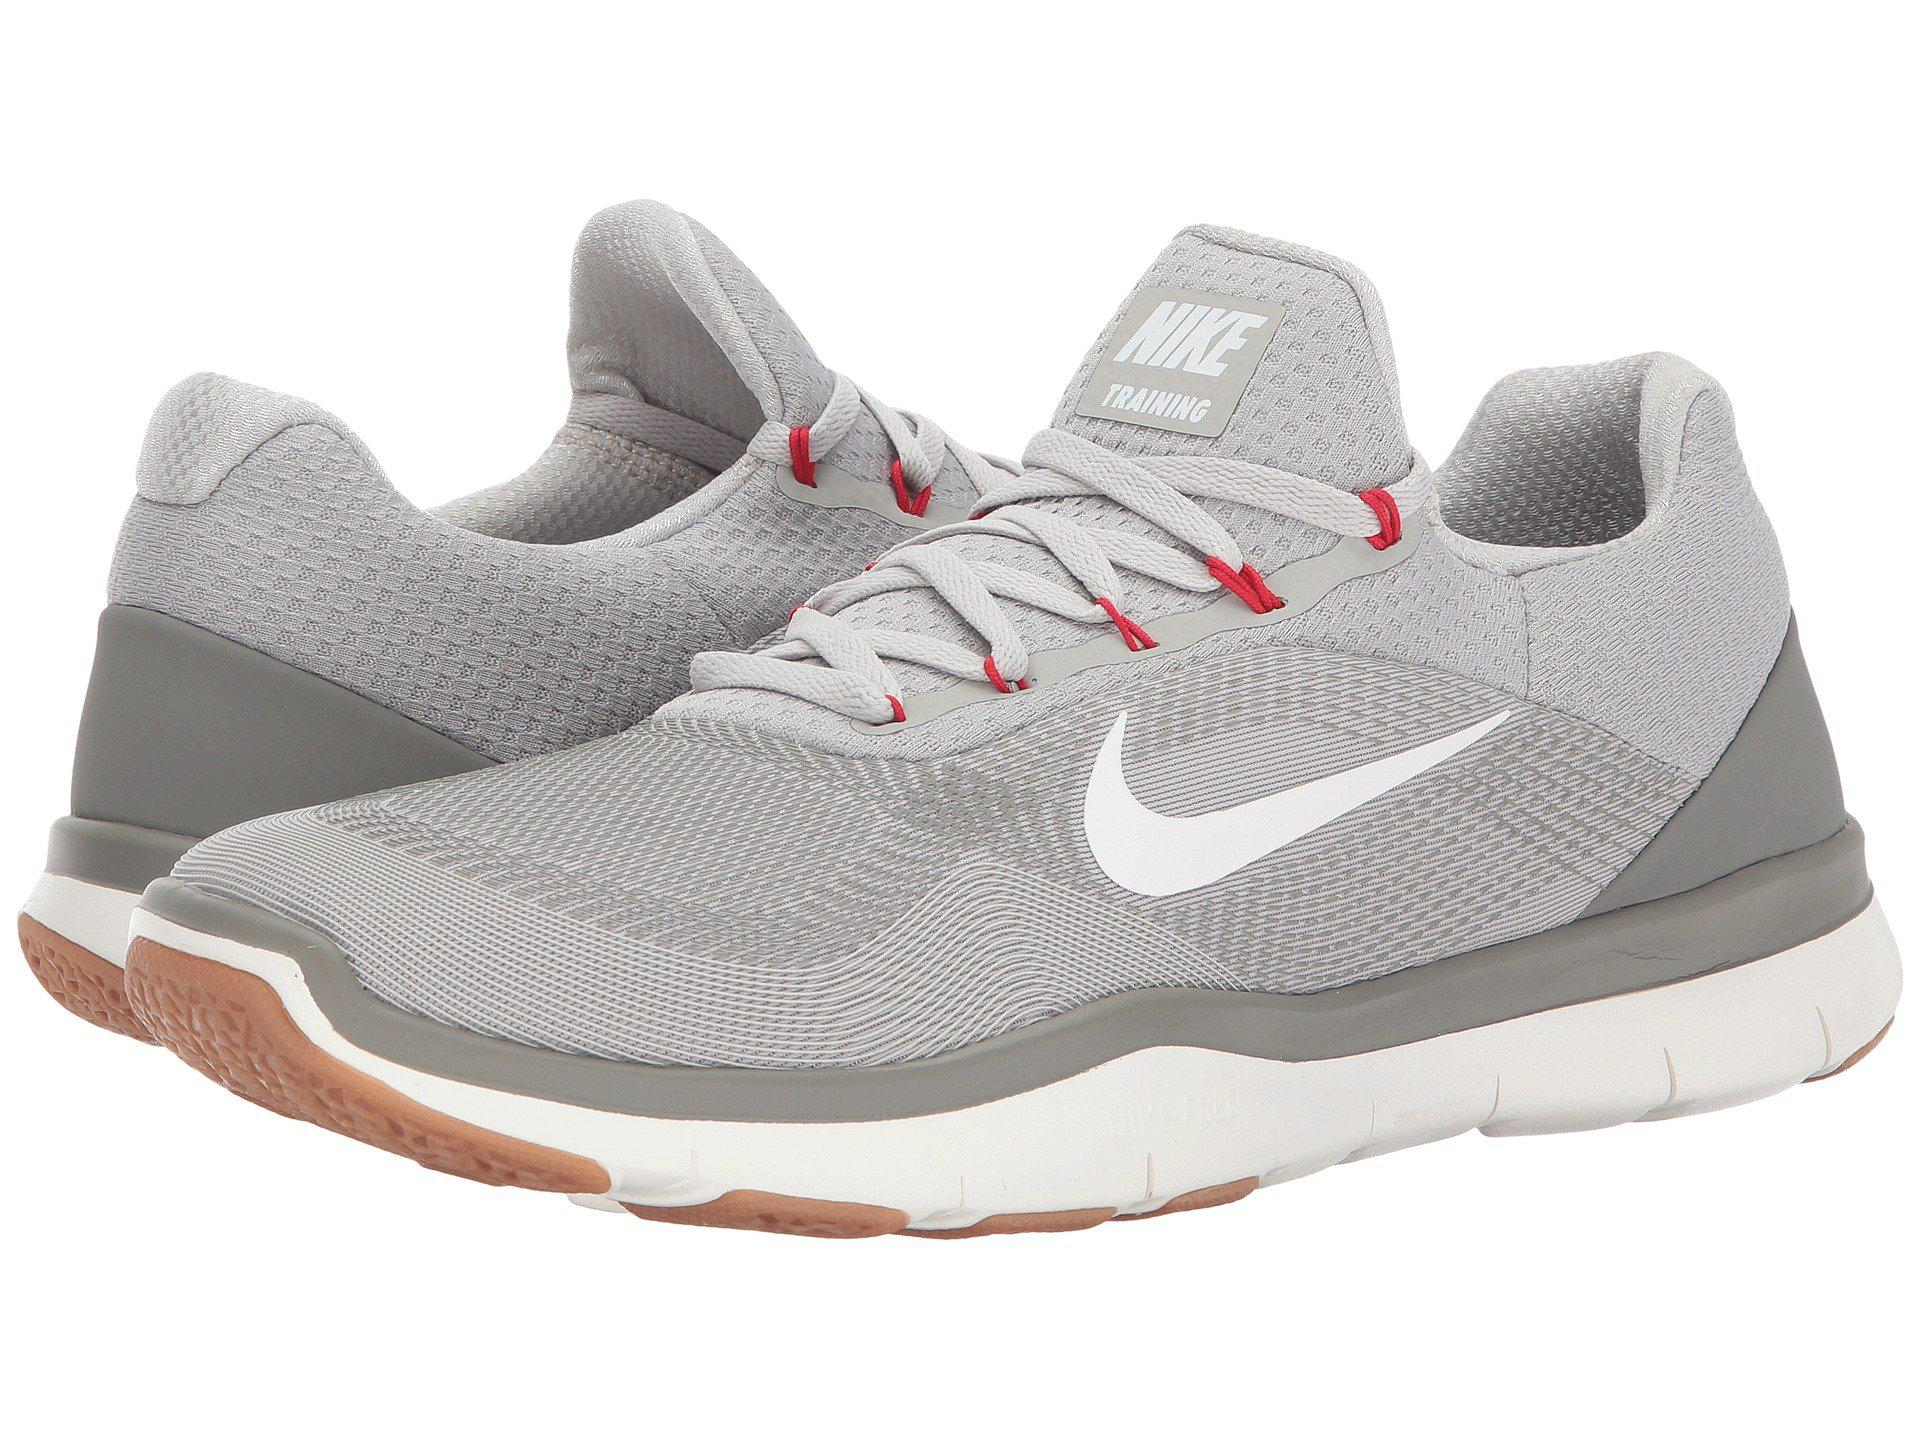 2659c585ff1d7 Lyst - Nike Free Trainer V7 in Gray for Men - Save 50%